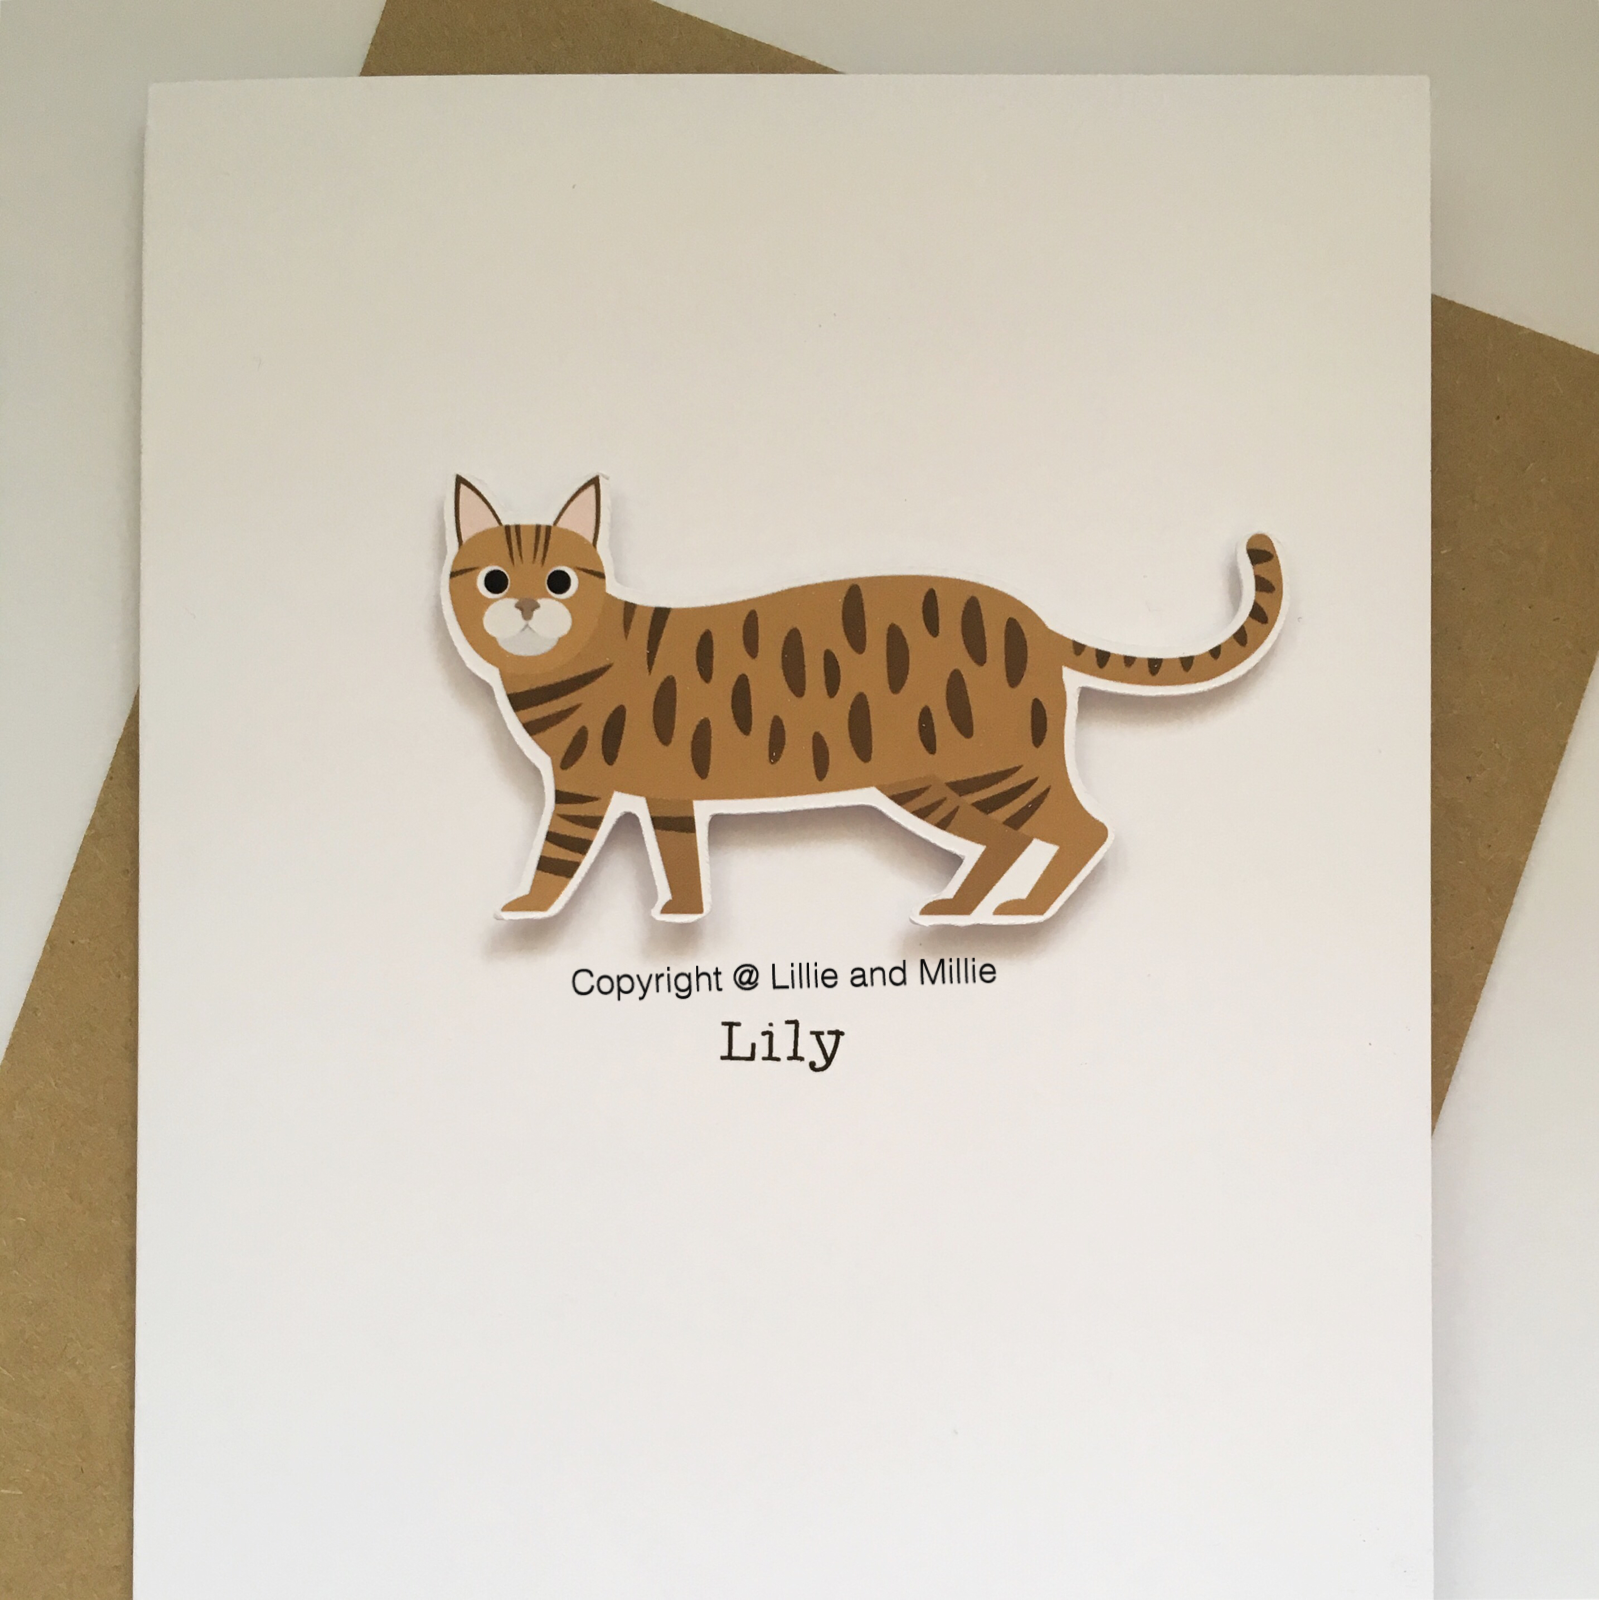 Cute and Cuddly American Shorthair Cat Greetings Card